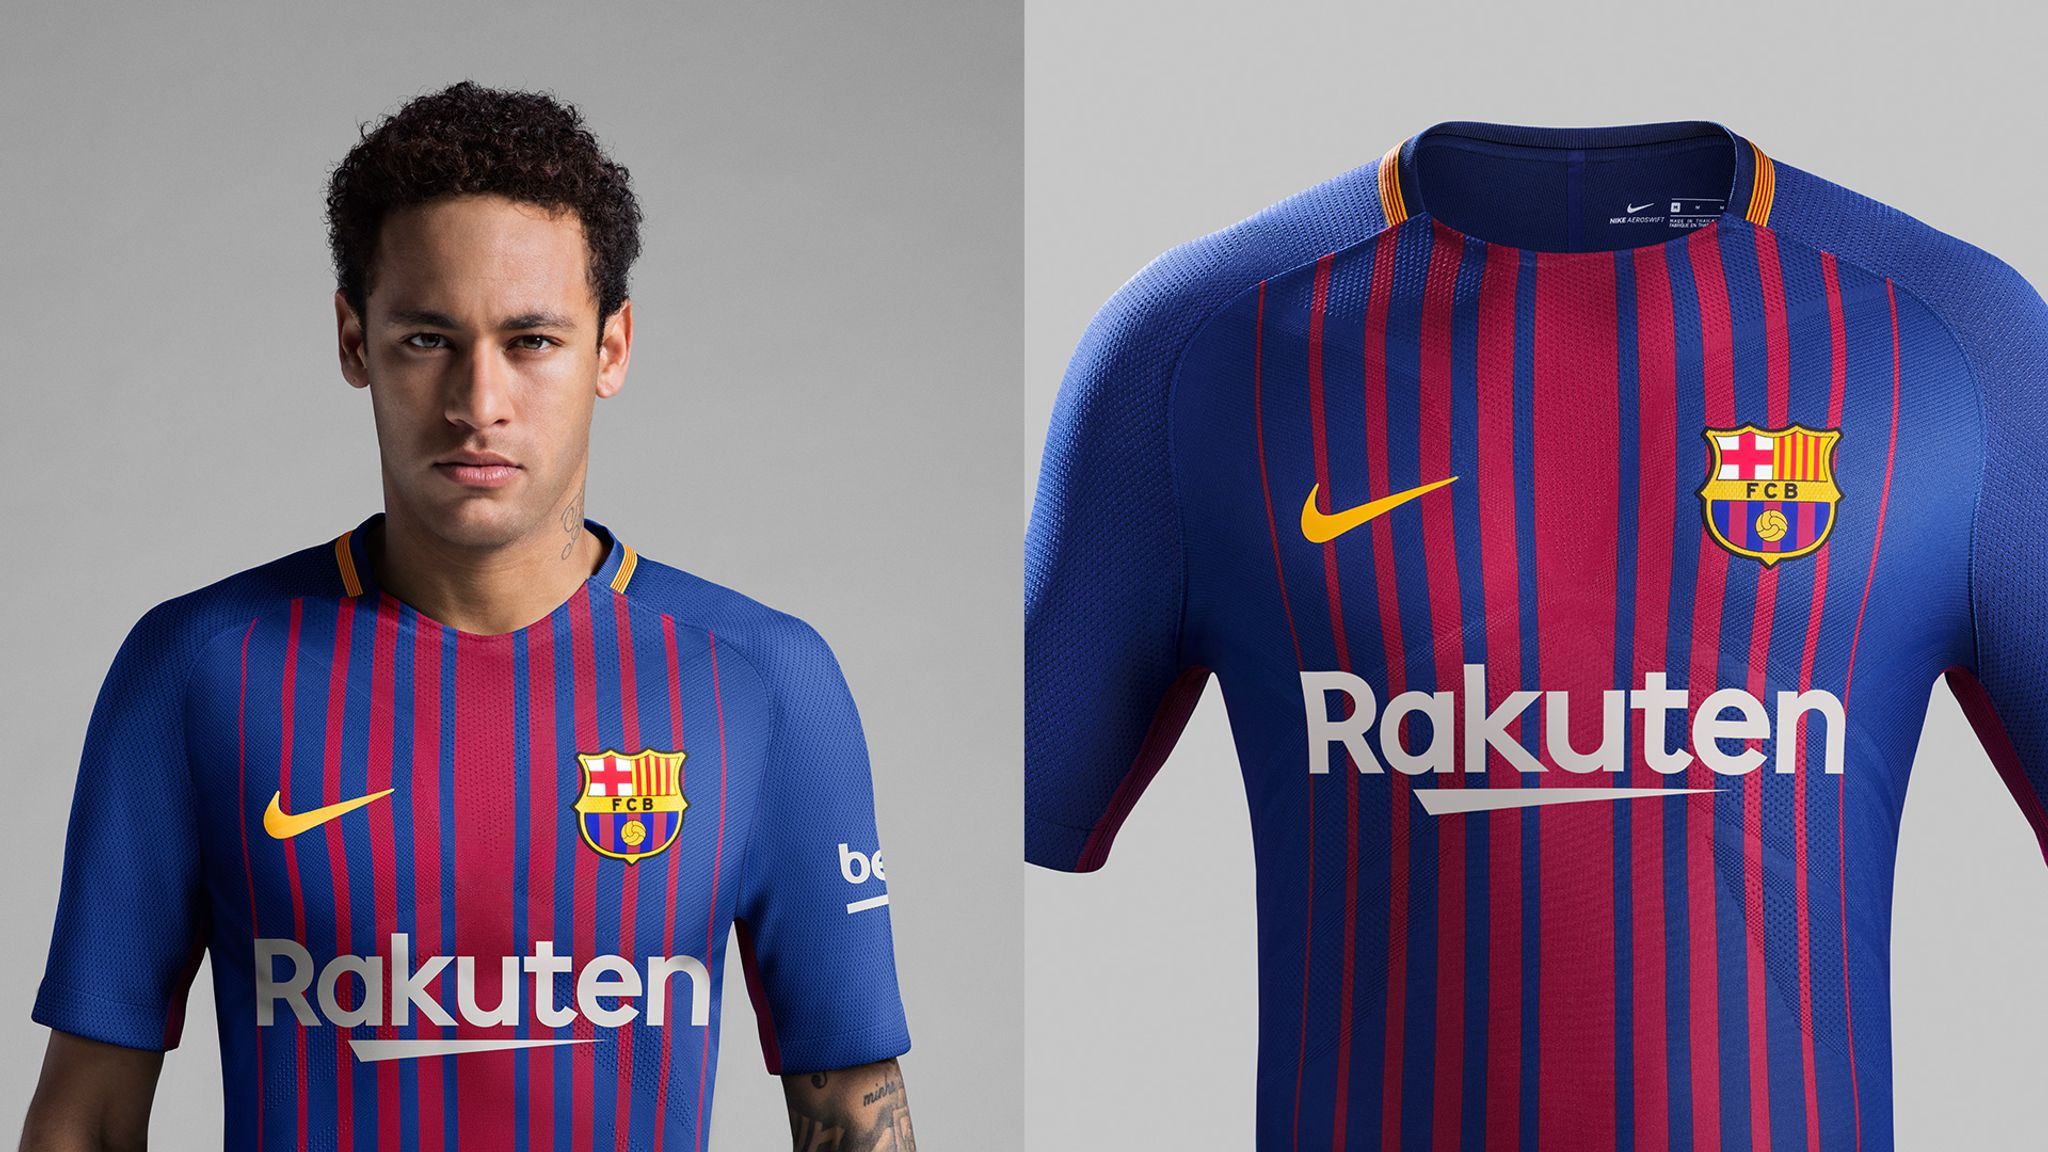 3577ad5a3a7 New football kits 2017/18: Real Madrid, Juventus, Barcelona, PSG, Bayern  Munich, Borussia Dortmund | Football News | Sky Sports